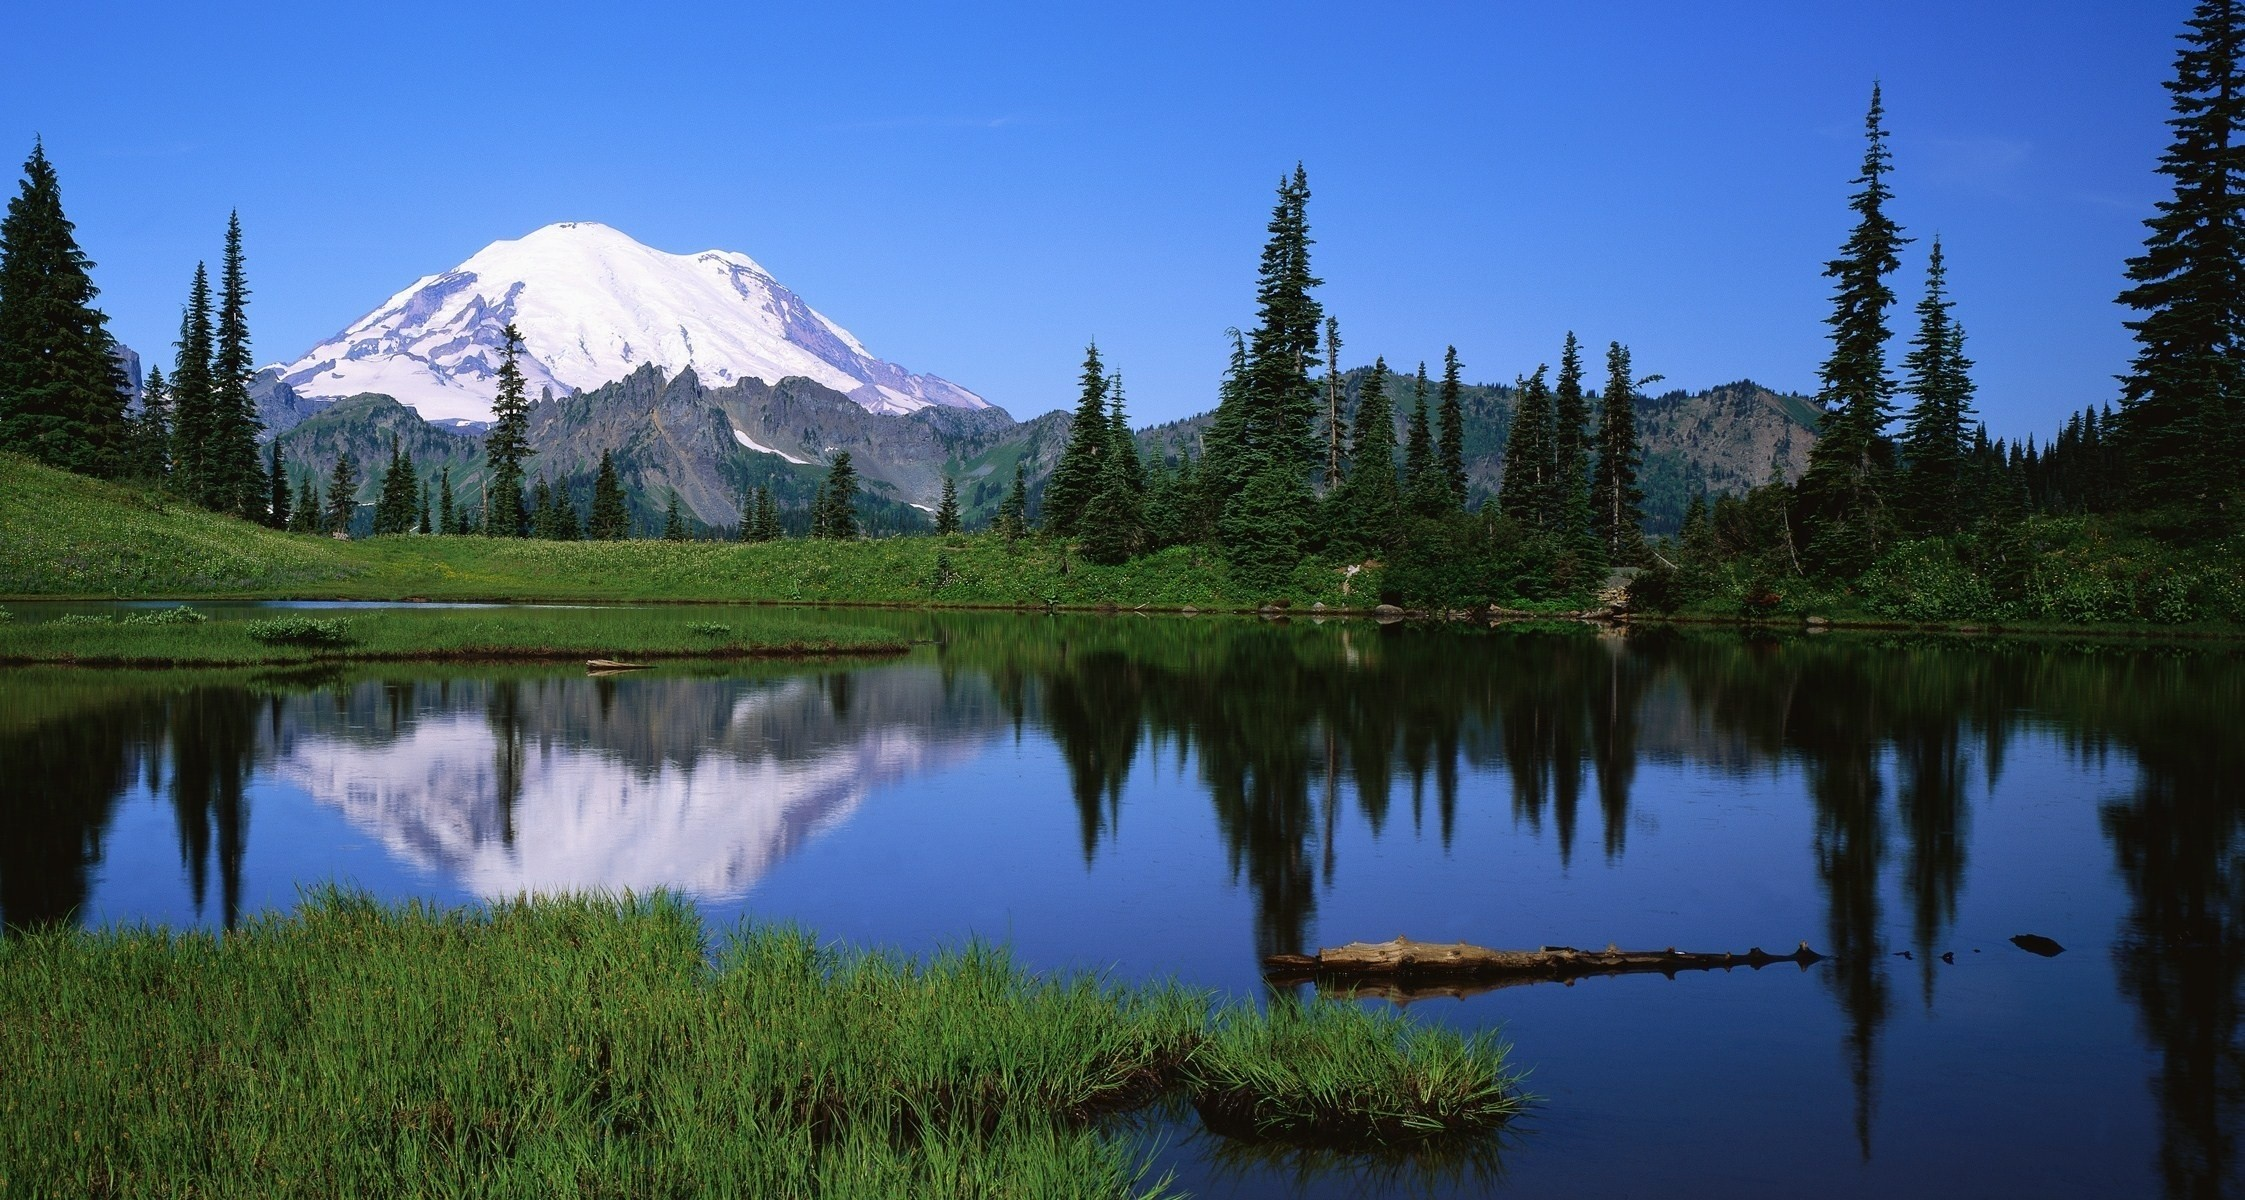 2245x1200 mount rainier washington usa desktop wallpaper Nature GoodWP